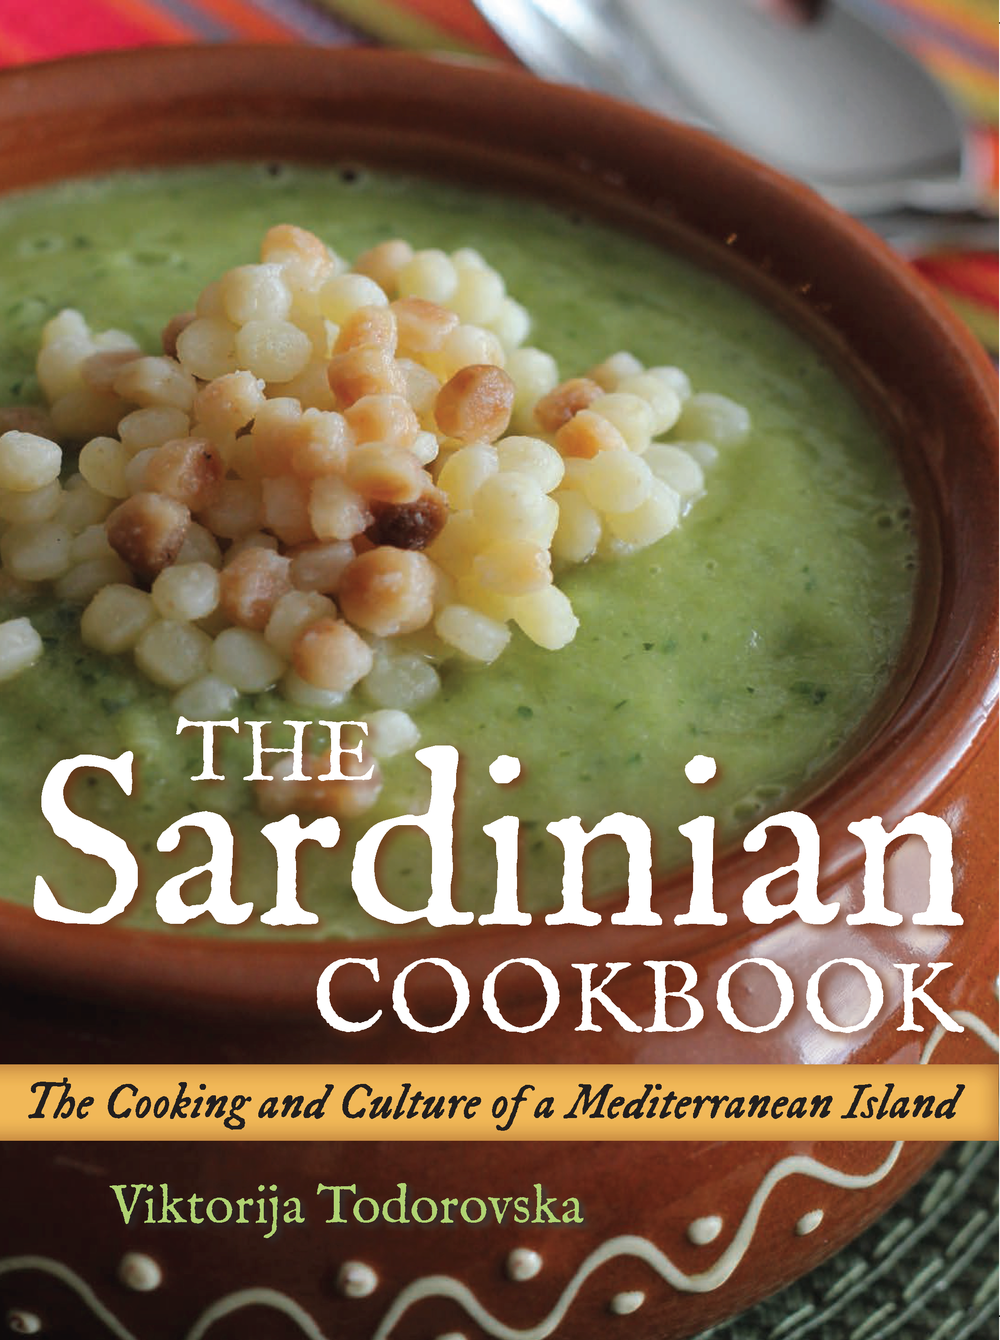 Sardinian Cookbook_Page_01.png